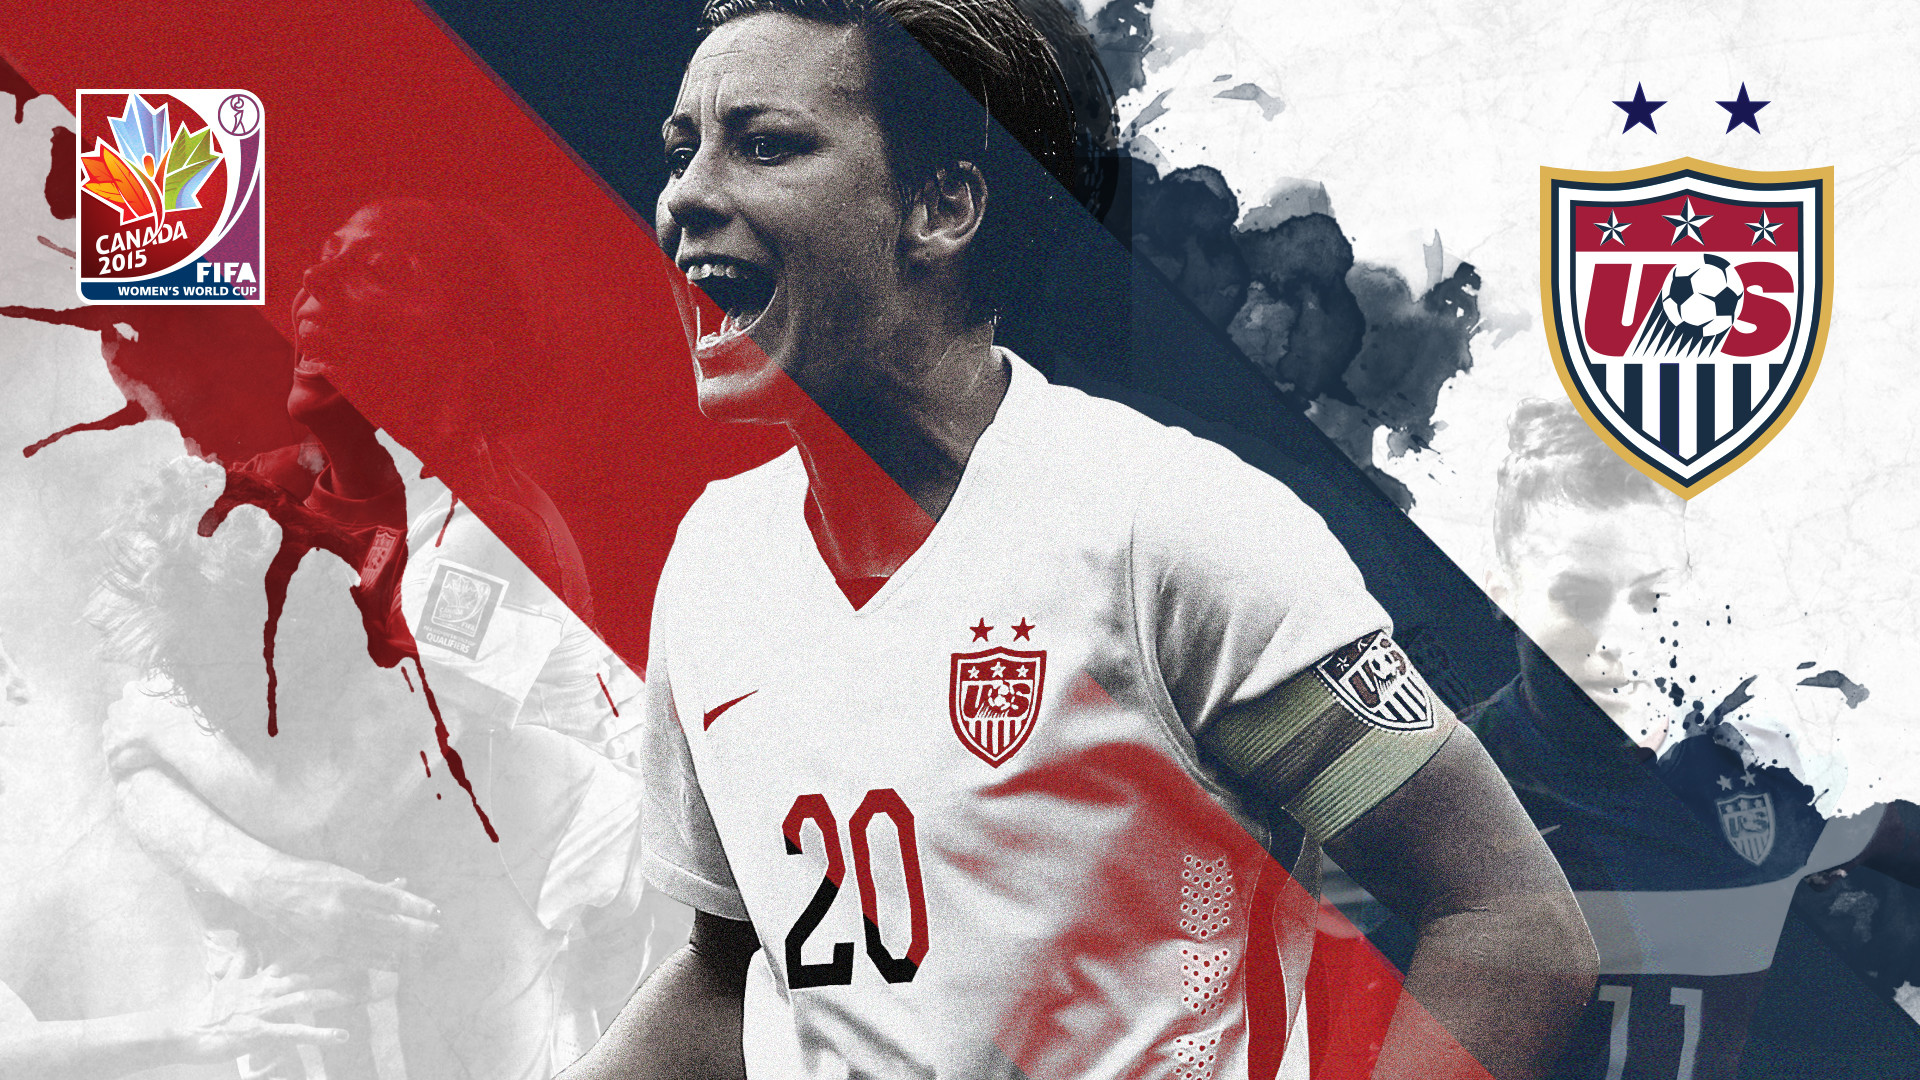 1920x1080 World Cup glory weighs on U.S. women's team | Soccer | Sporting News